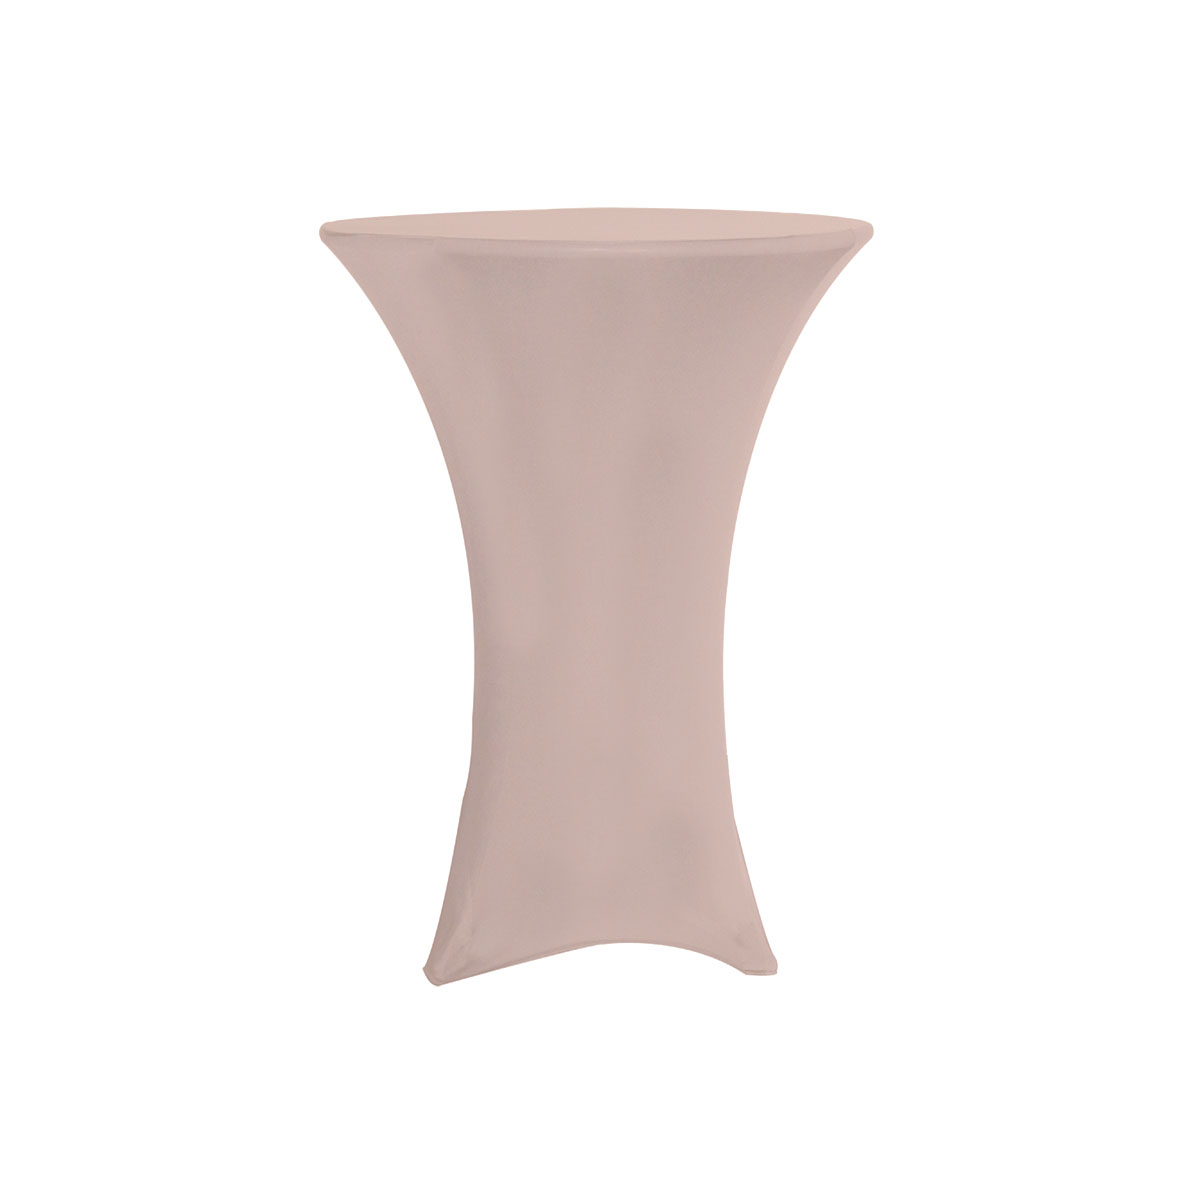 party chair covers walmart ritter dental parts your 30 inch highboy cocktail round stretch spandex table cover blush for wedding birthday patio etc com